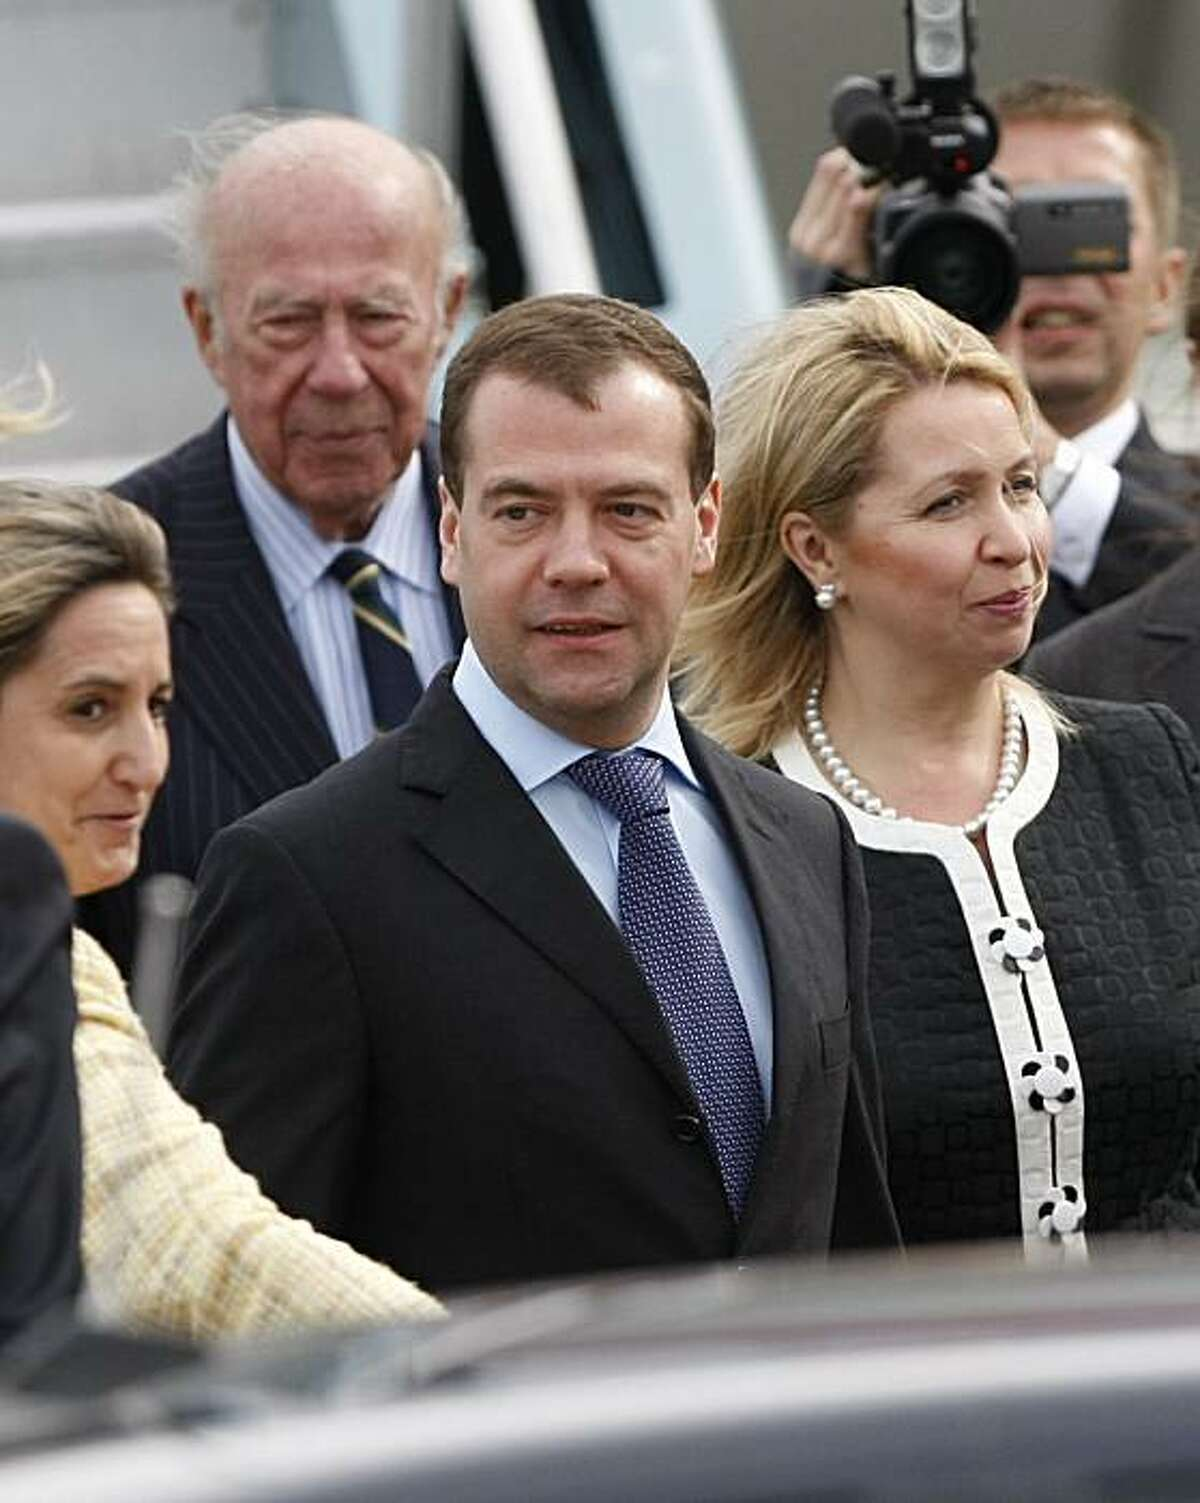 Russian President Dmitry Medvedev and his wife Svetlana, right, arrive in San Francisco, Tuesday, June 22, 2010. Medvedev is in California for a two-day visit to Silicon Valley. At rear left is former Secretary of State George Shultz.